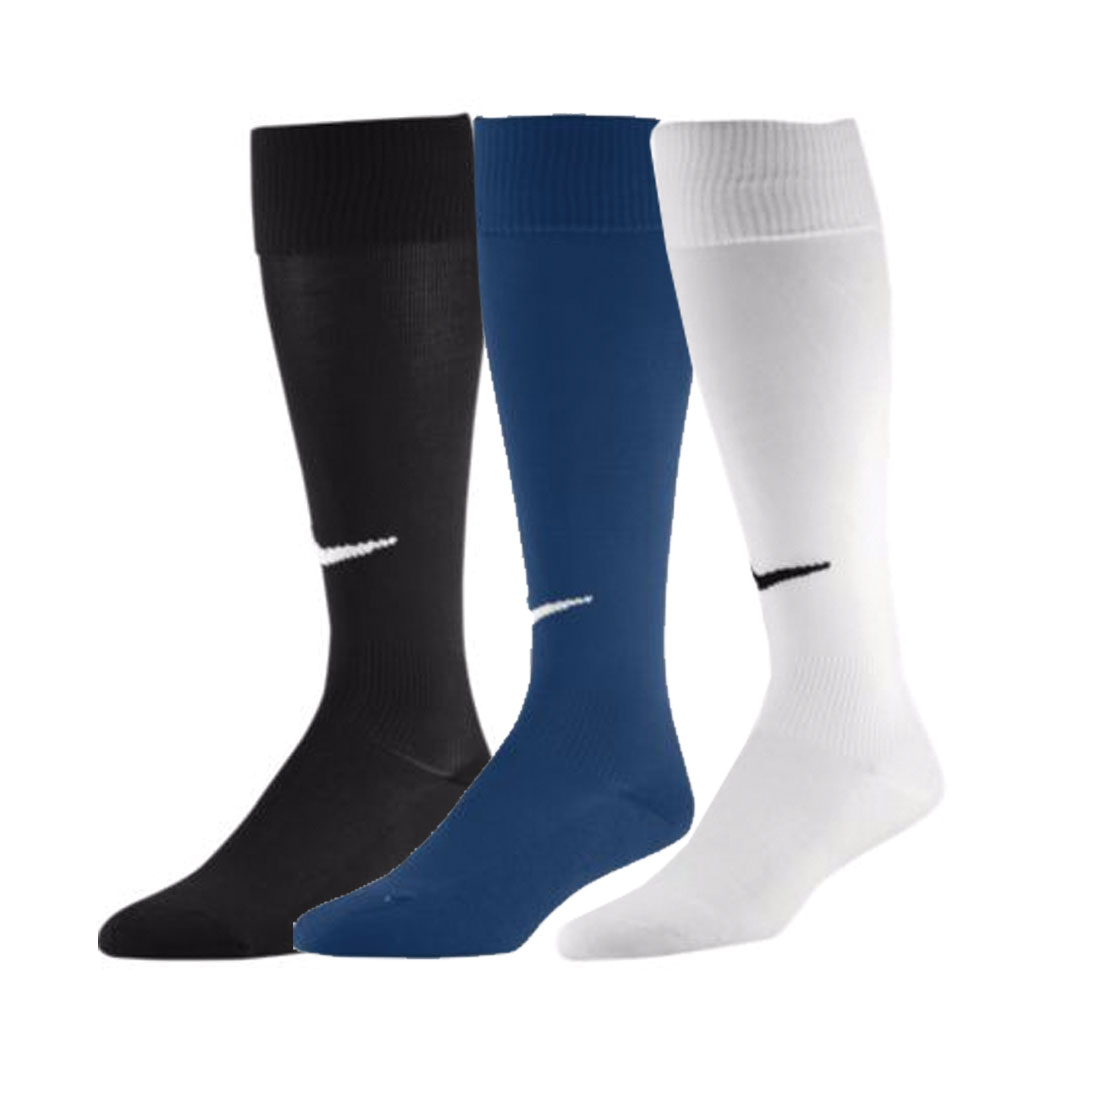 9efd264a0a91 Nike Classic II Over the Calf Sock - longstreth.com